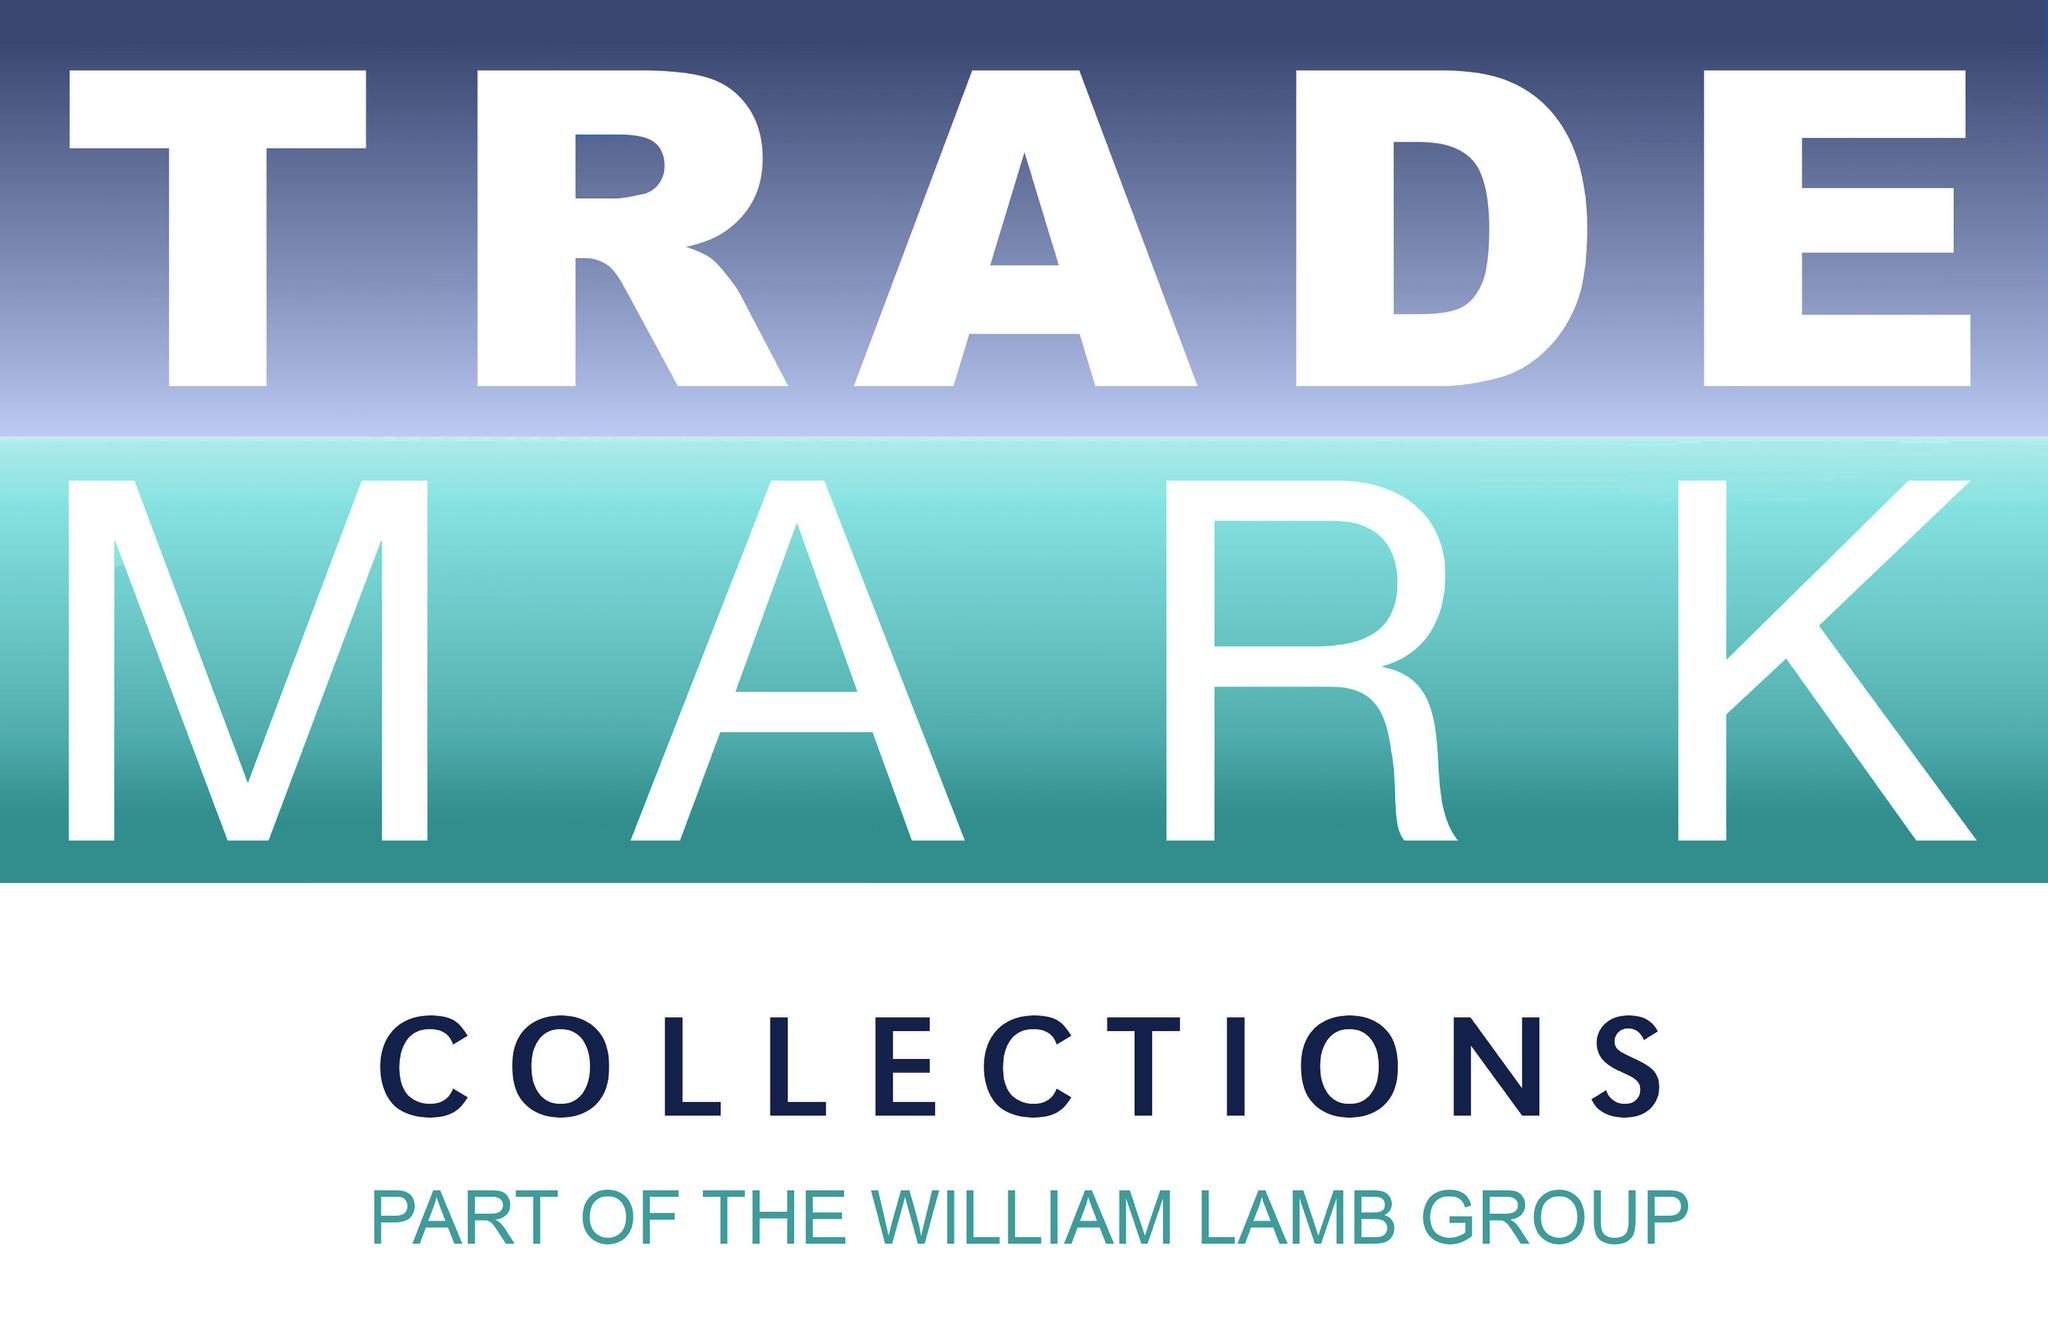 Trade Mark Collections Ltd